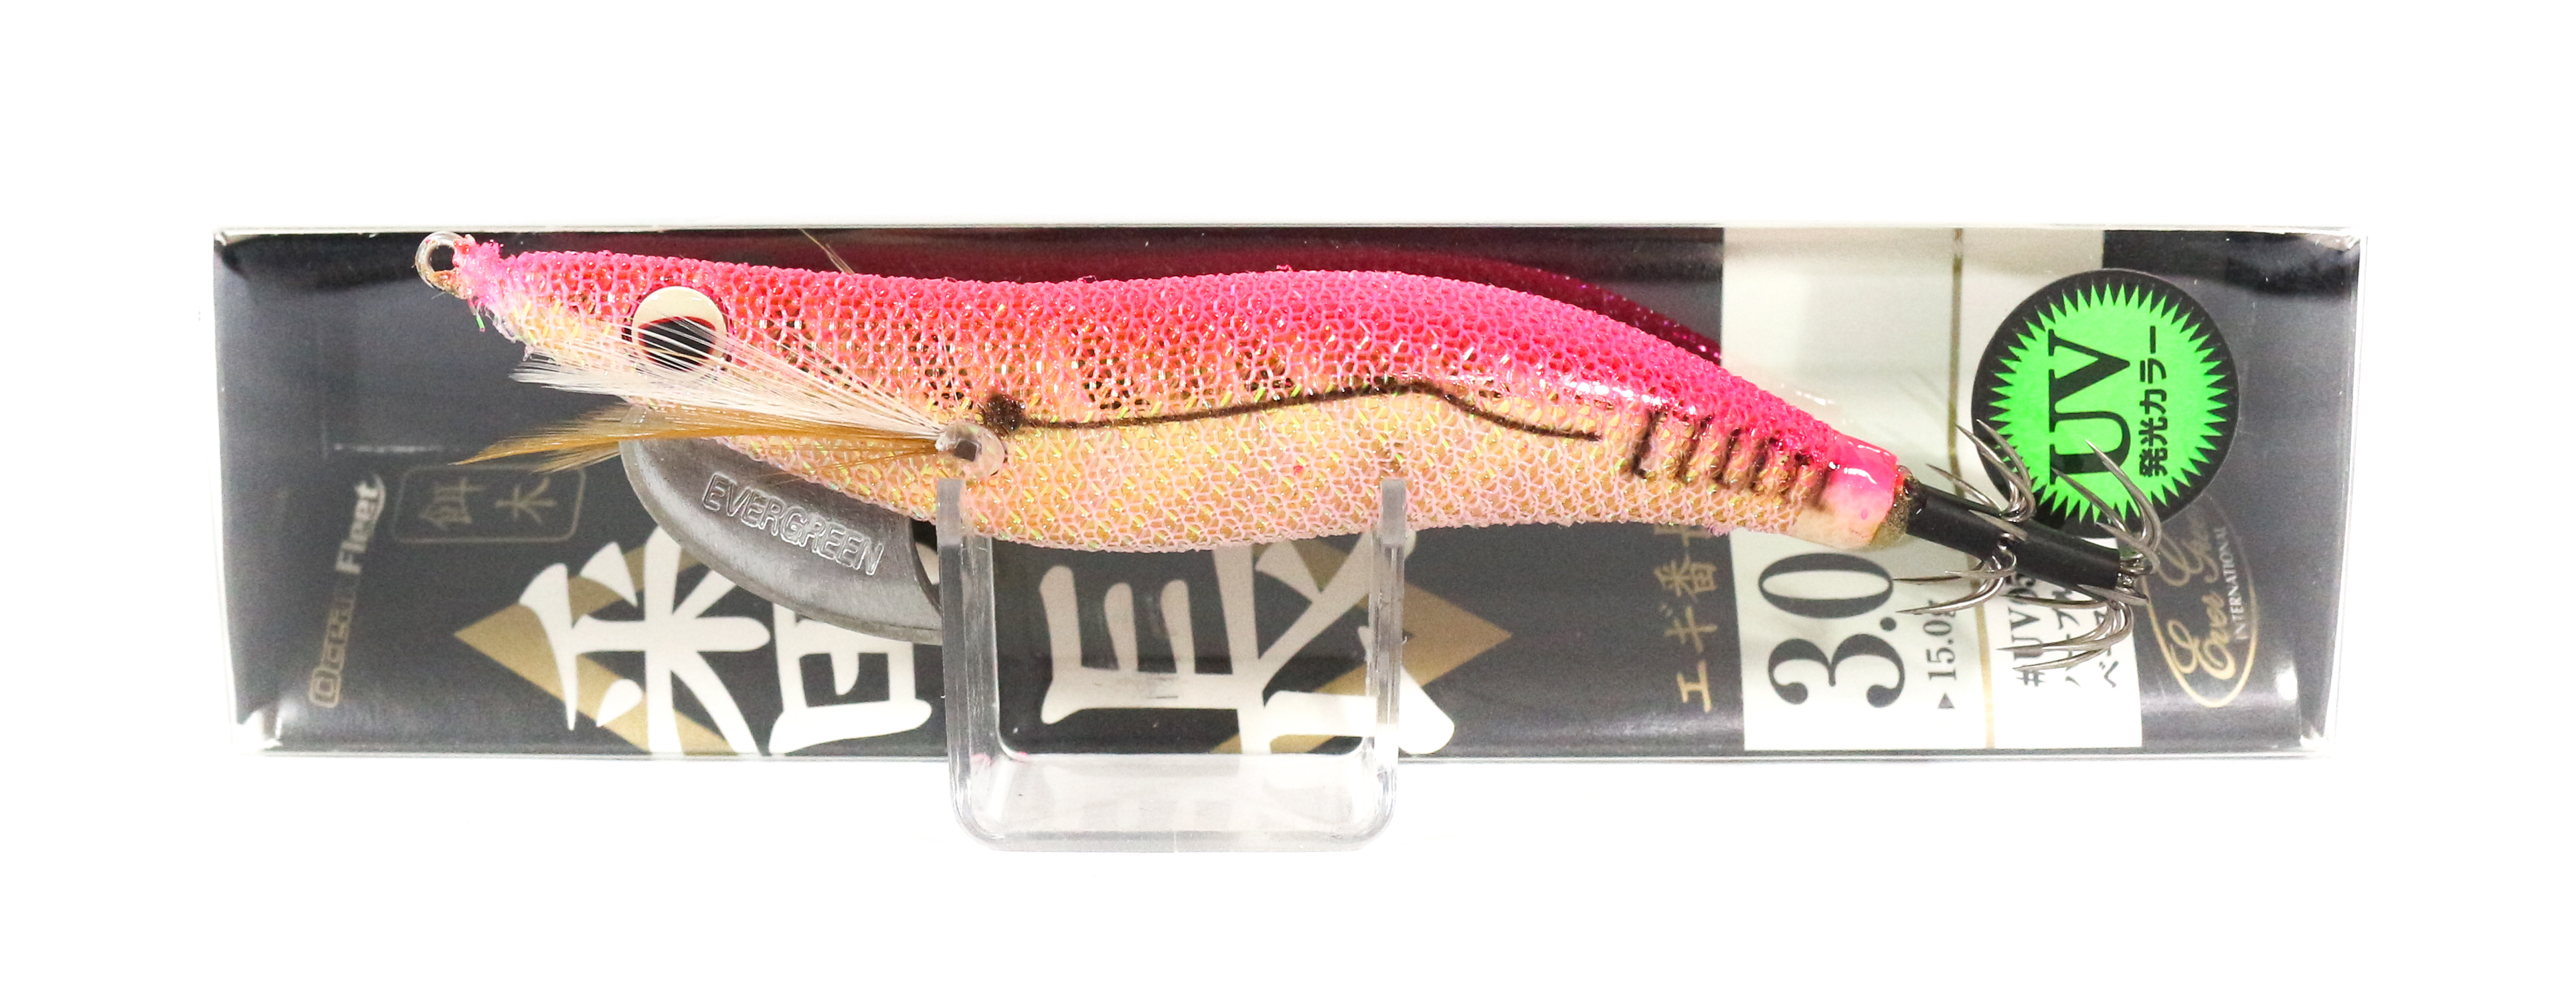 Evergreen Ocean Fleet Custom Squid Jig Lure 3.0 UV0106G (9117)